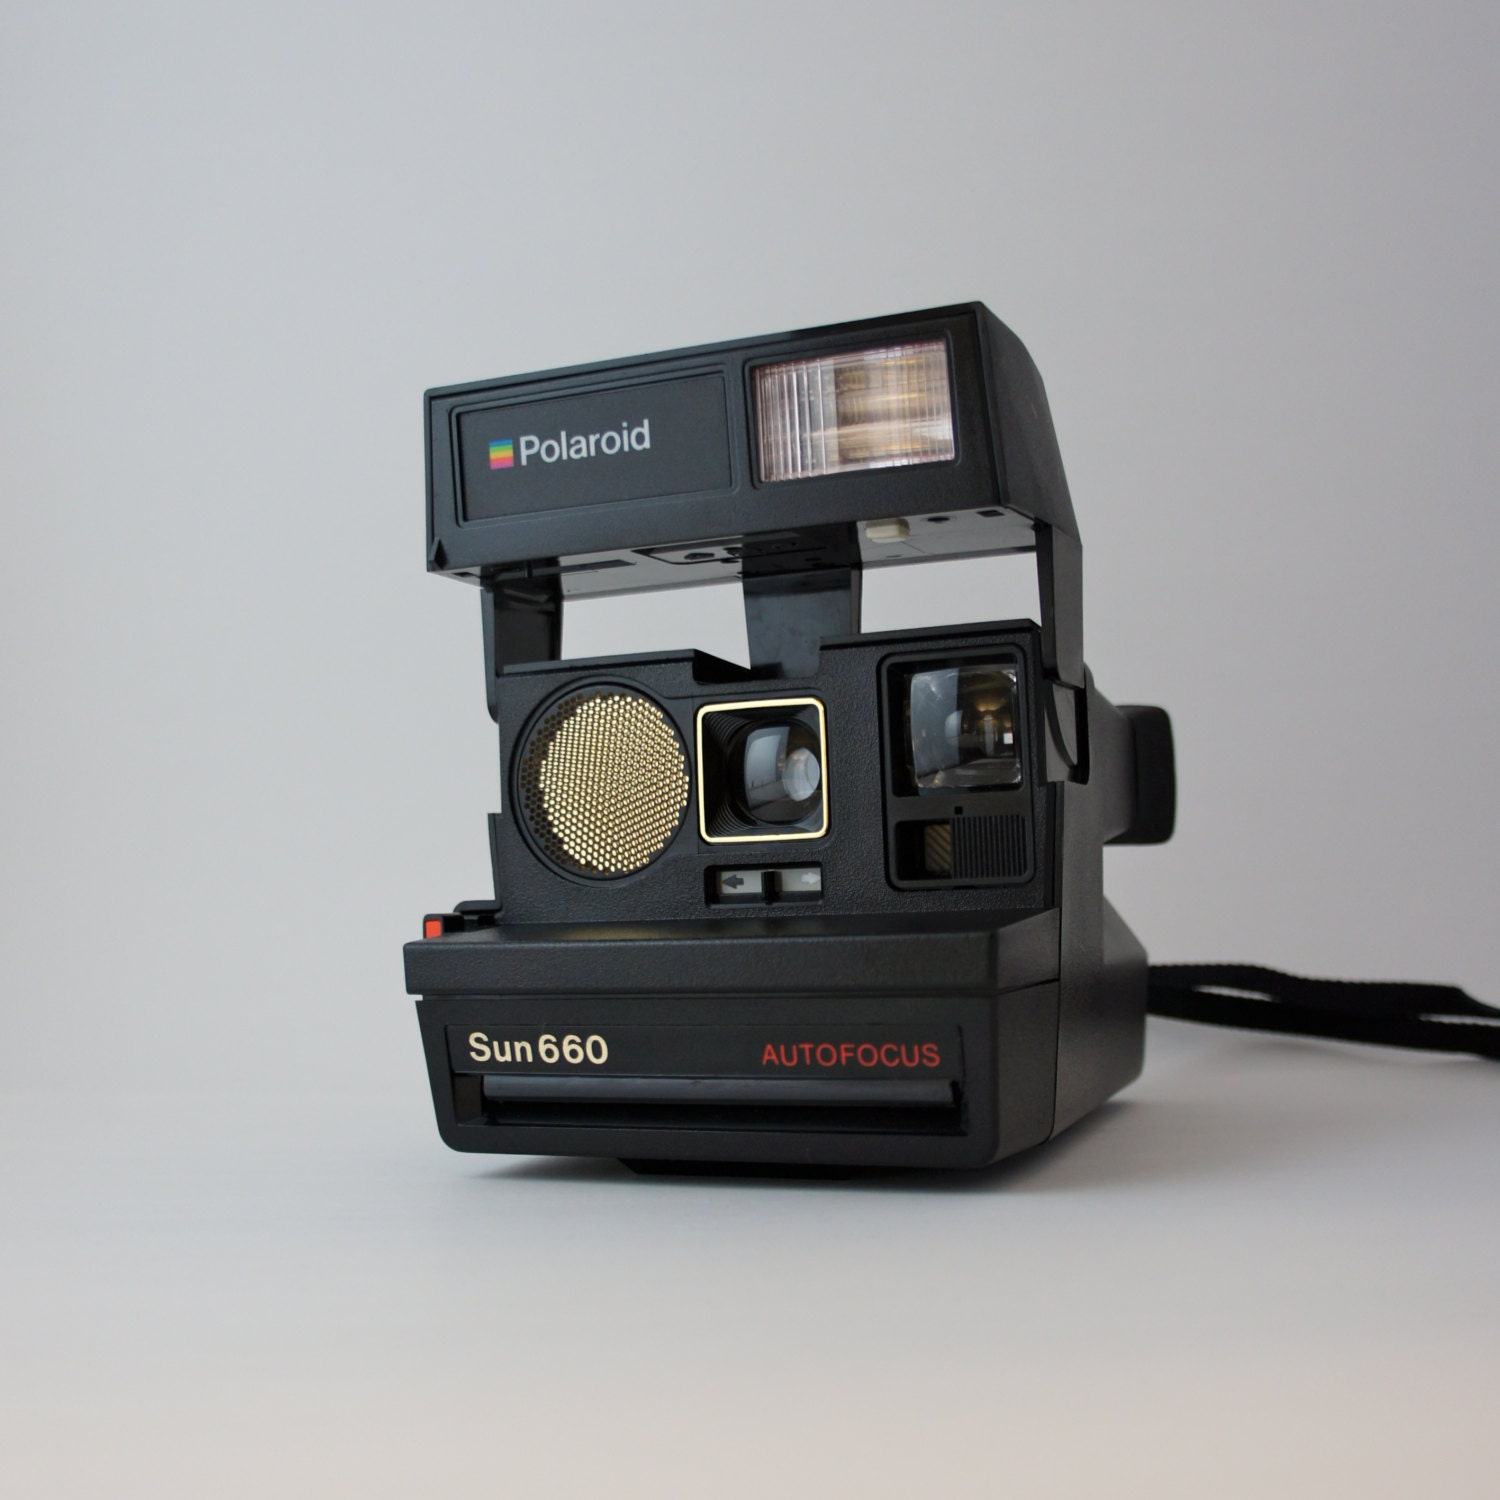 polaroid sun 660 autofocus 600 camera by boomvintage on etsy. Black Bedroom Furniture Sets. Home Design Ideas